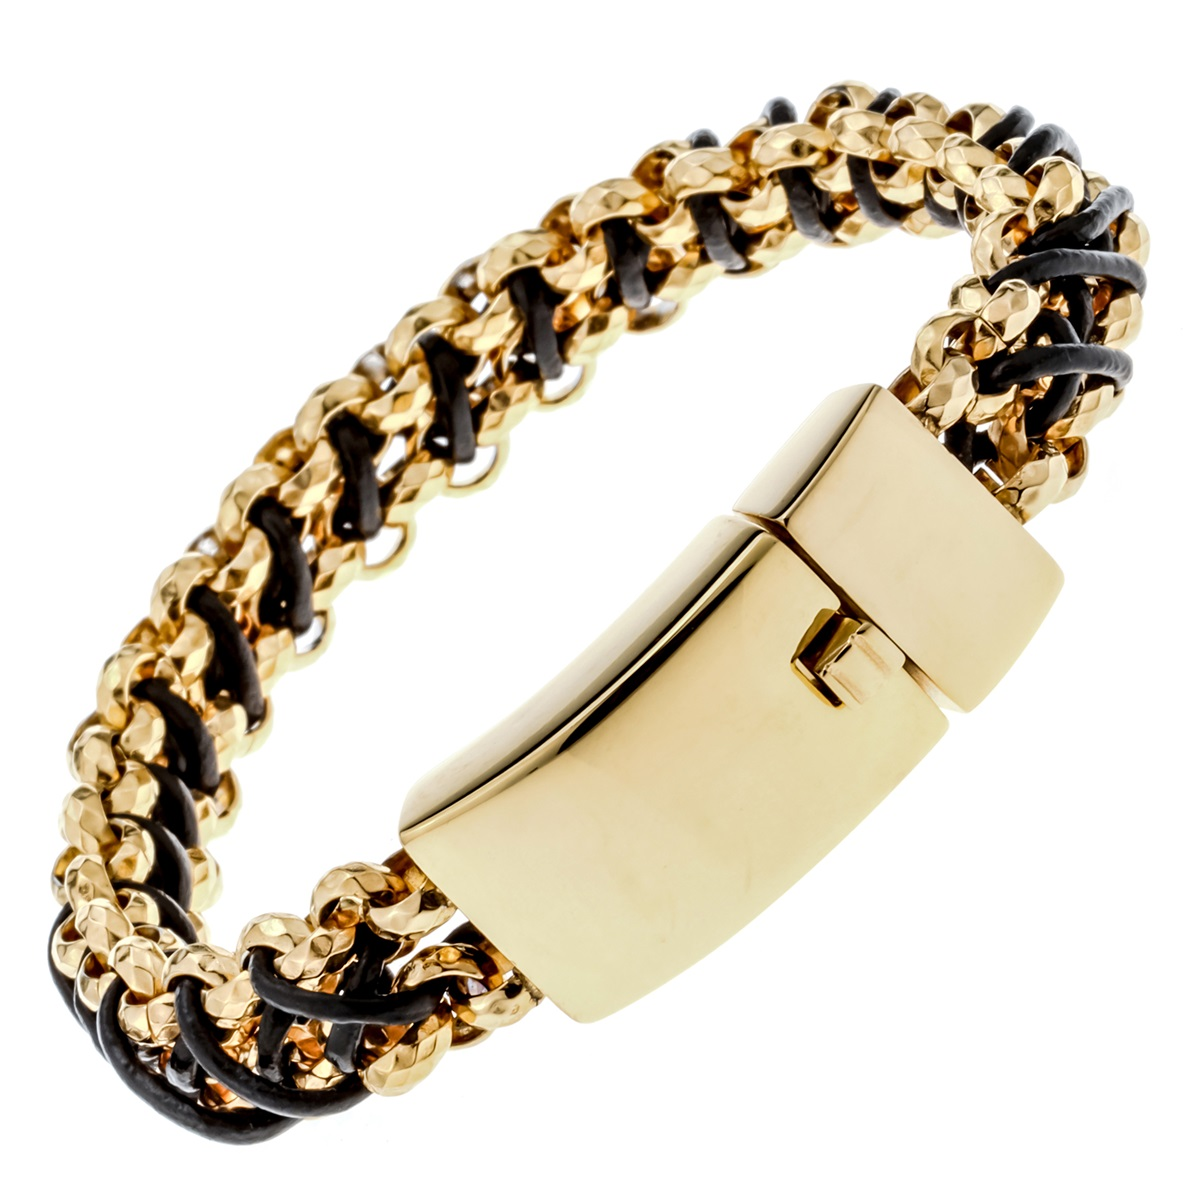 Mens Stainless Steel Black Leather Link Chain Bracelet Gold Silver Color  Jewelry Birthday Gifts For Dad